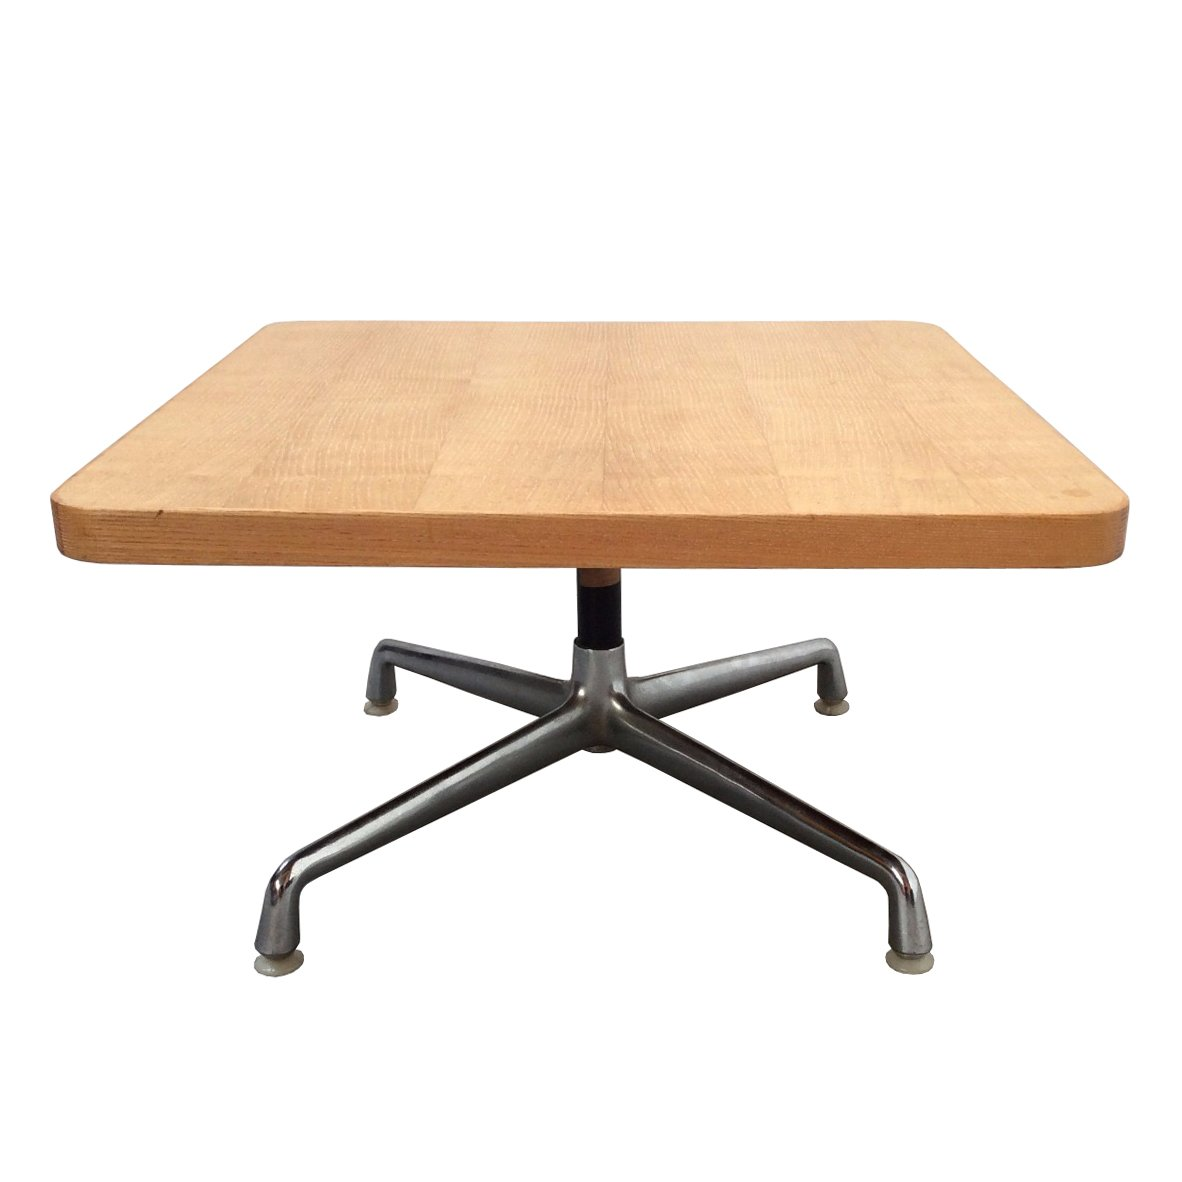 Awesome Vintage American Coffee Table By Charles Eames For Herman Miller, 1960s For  Sale At Pamono